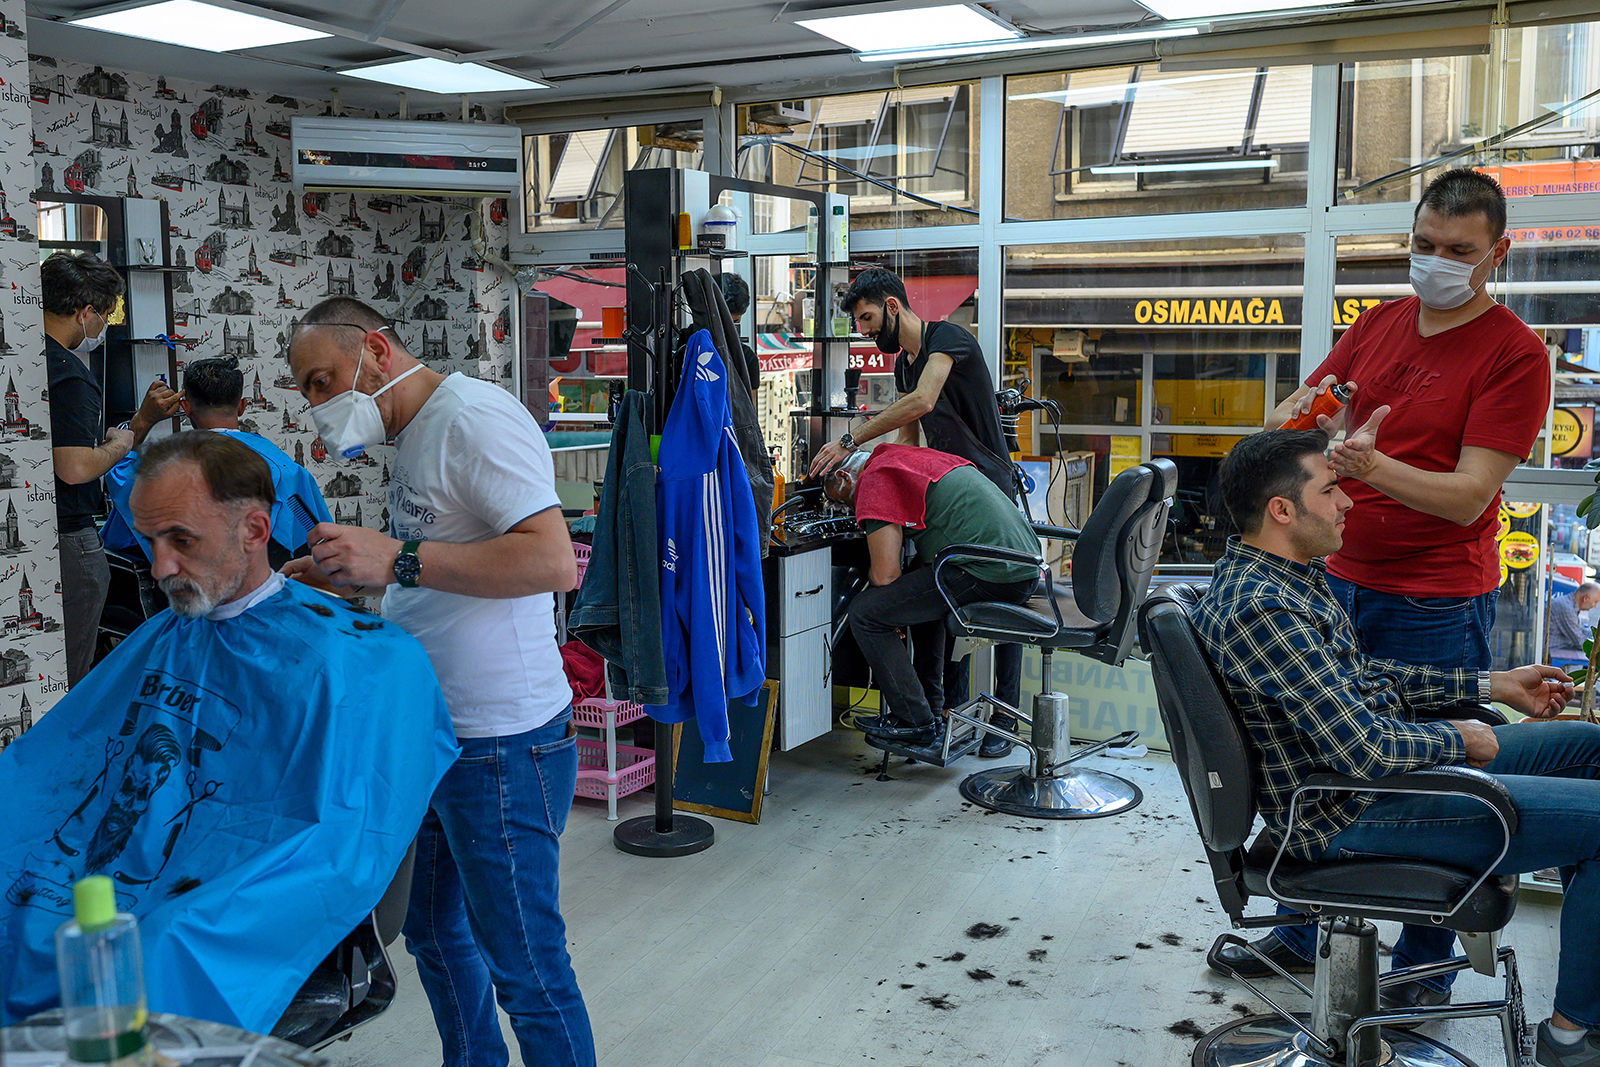 Barbers cut hair while wearing protective face masks in a barber shop in Istanbul on May 11.